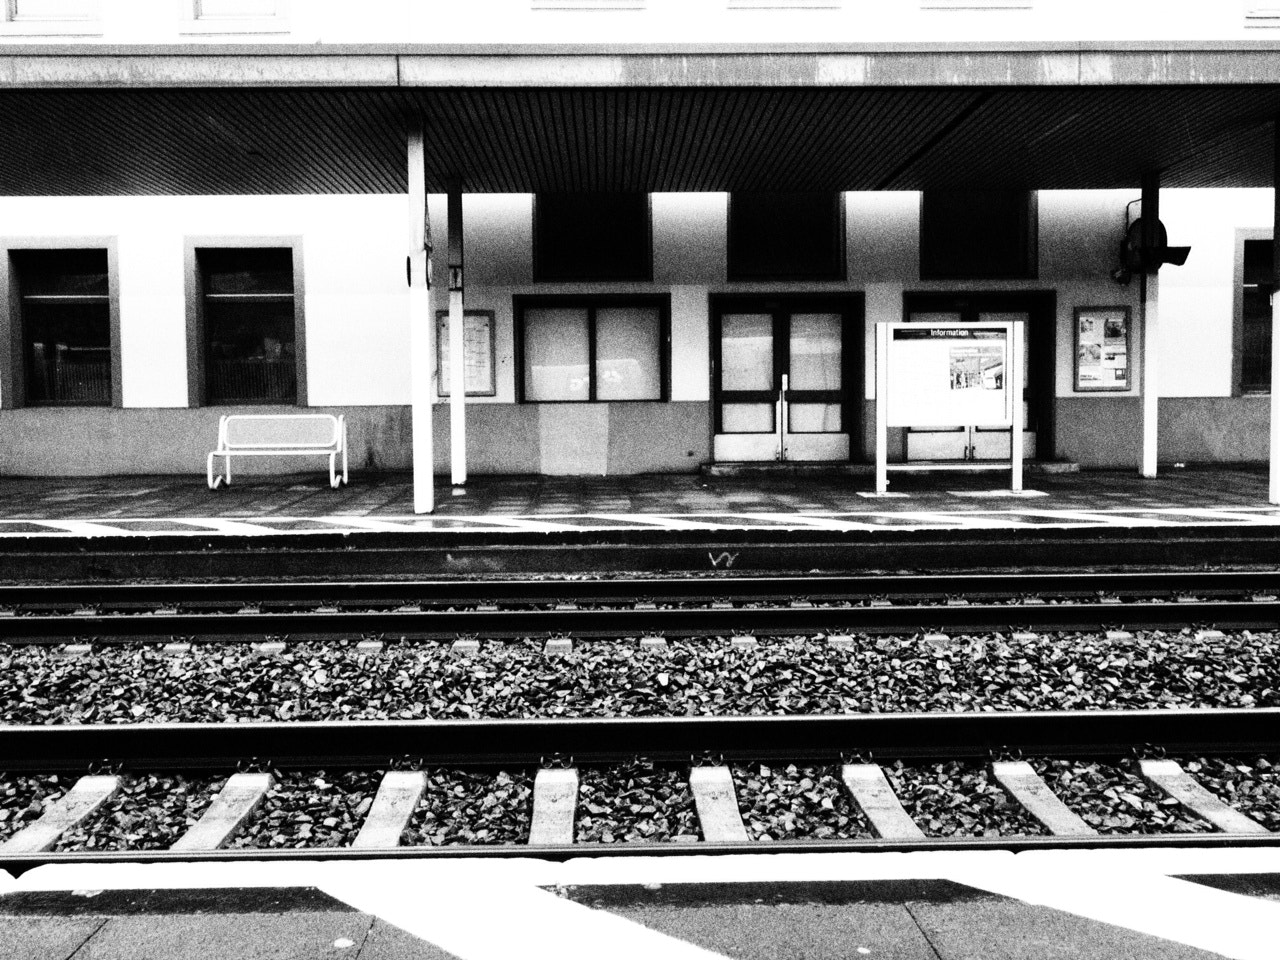 Photograph Train Station by MarkLs L. on 500px